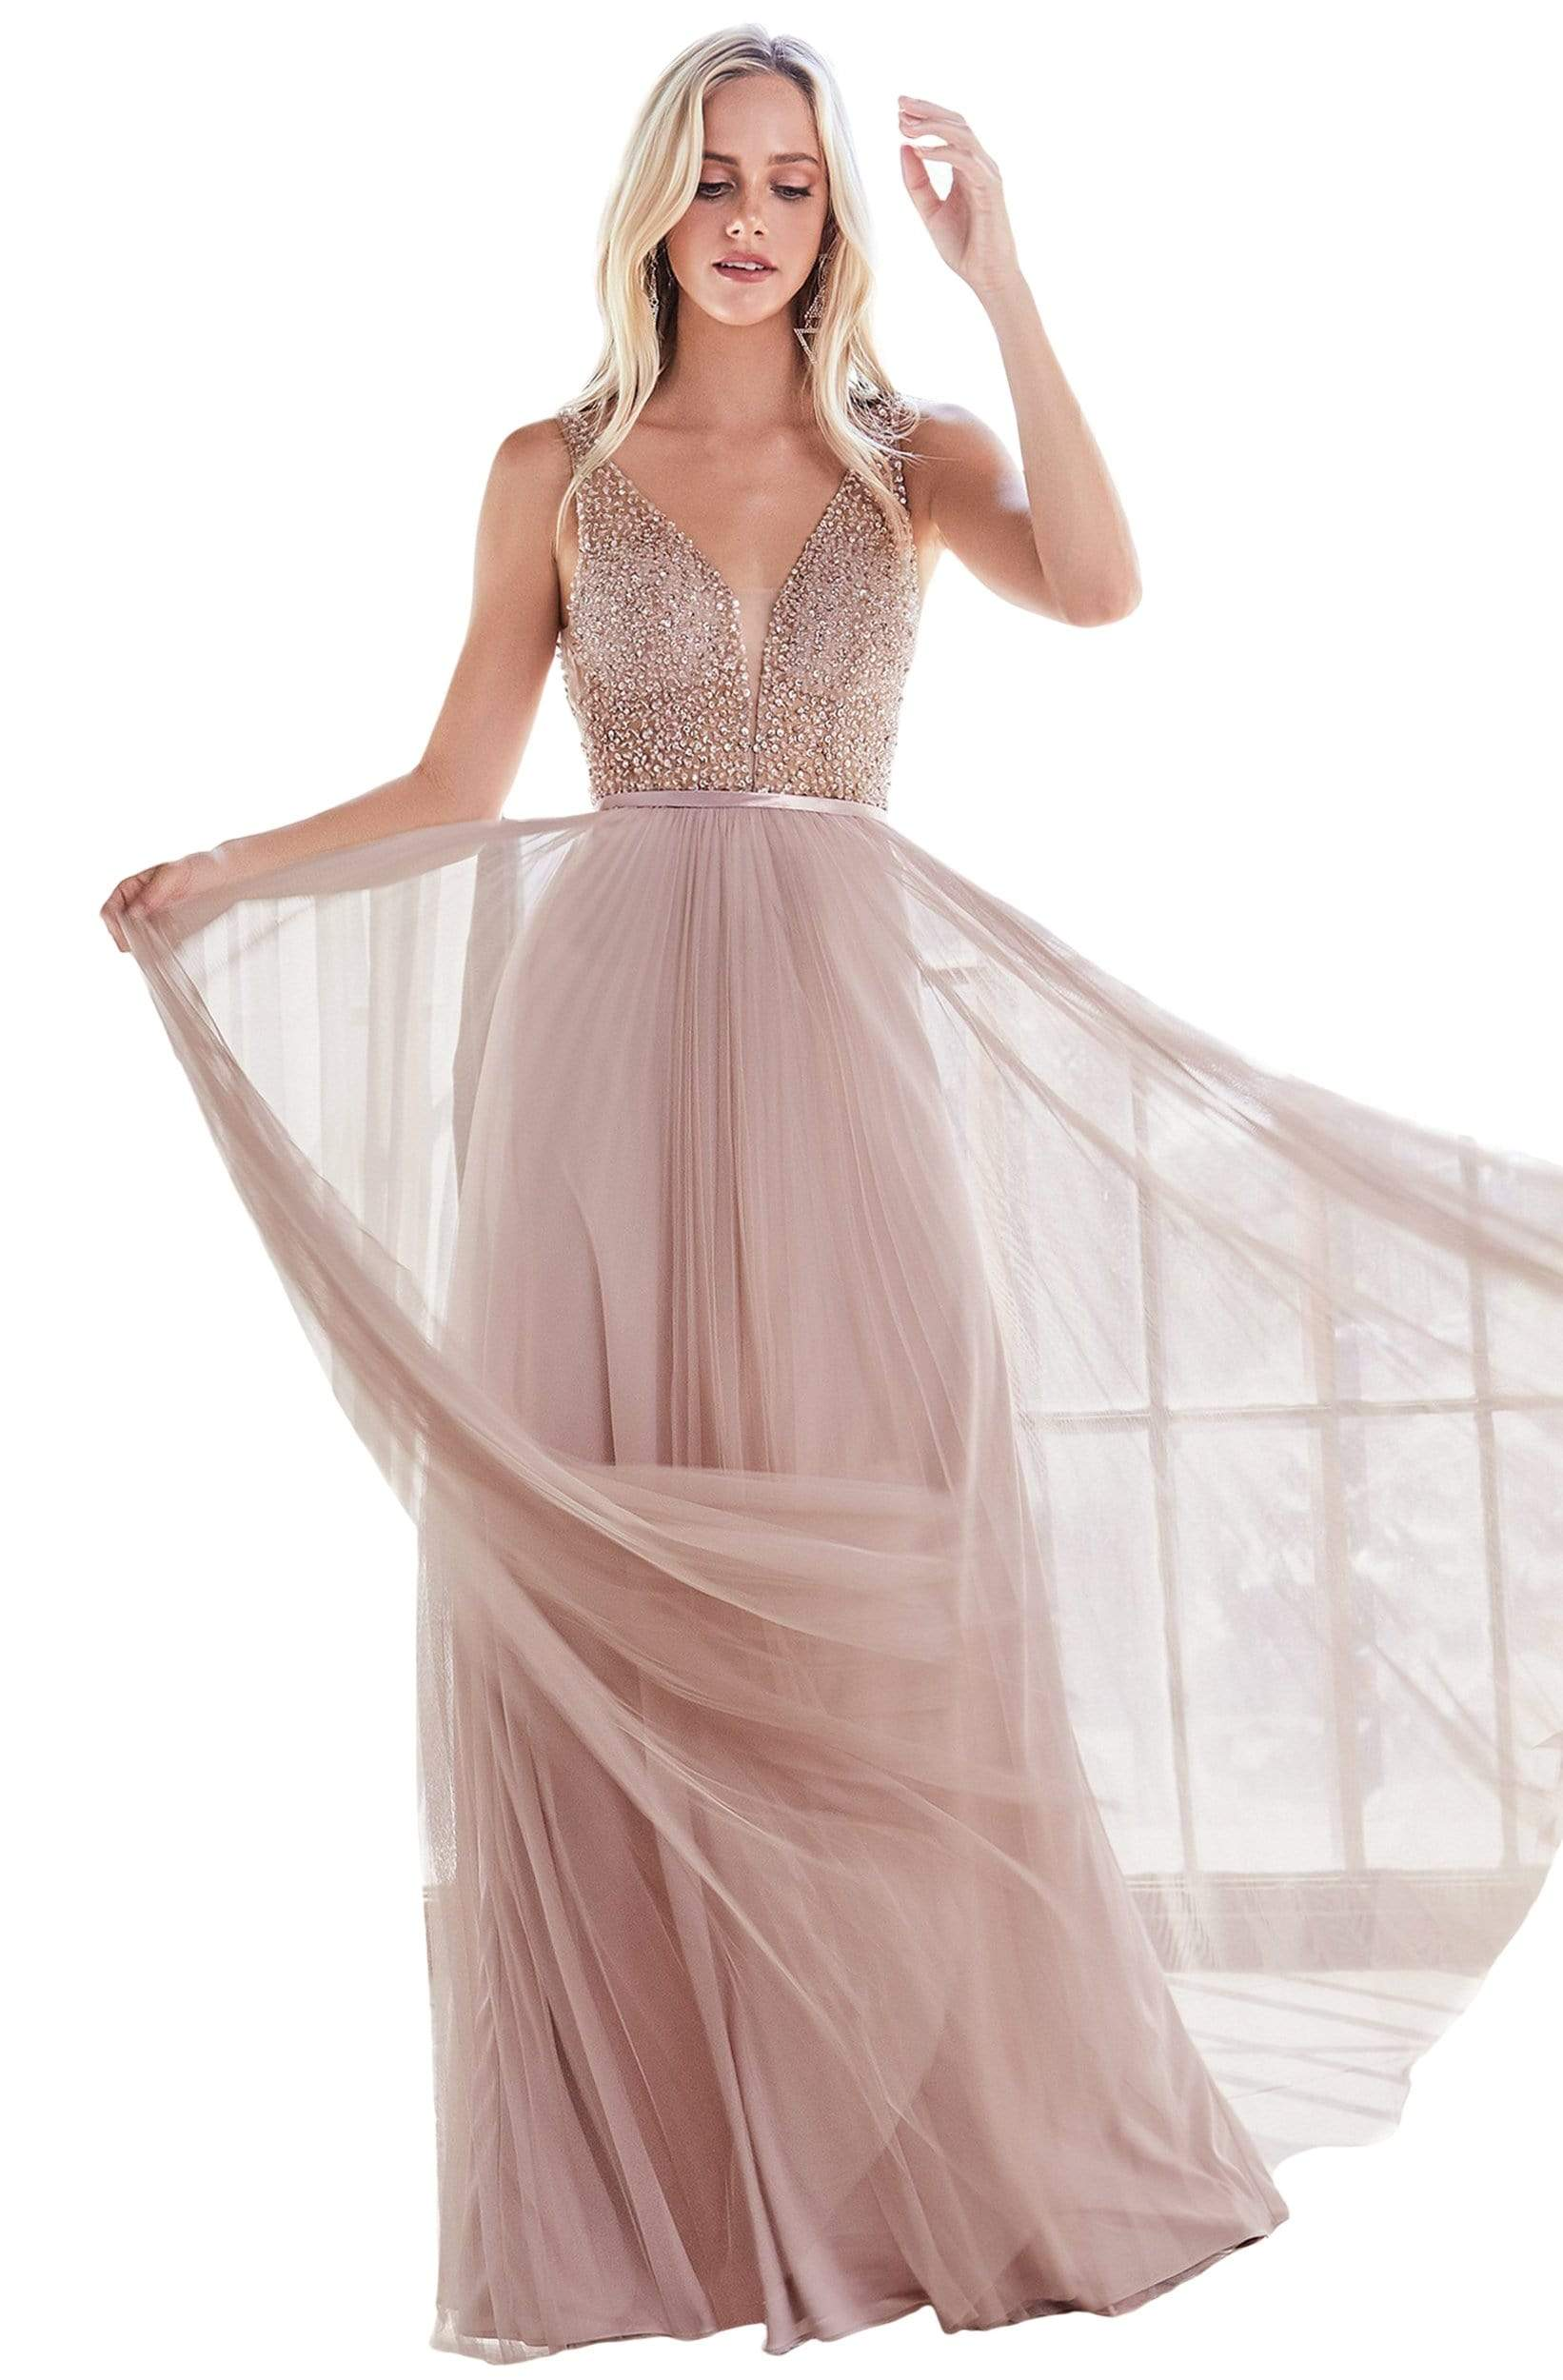 Cinderella Divine - CD192 Beaded Bodice Sheer Overlay A-line Gown In Pink and Neutral